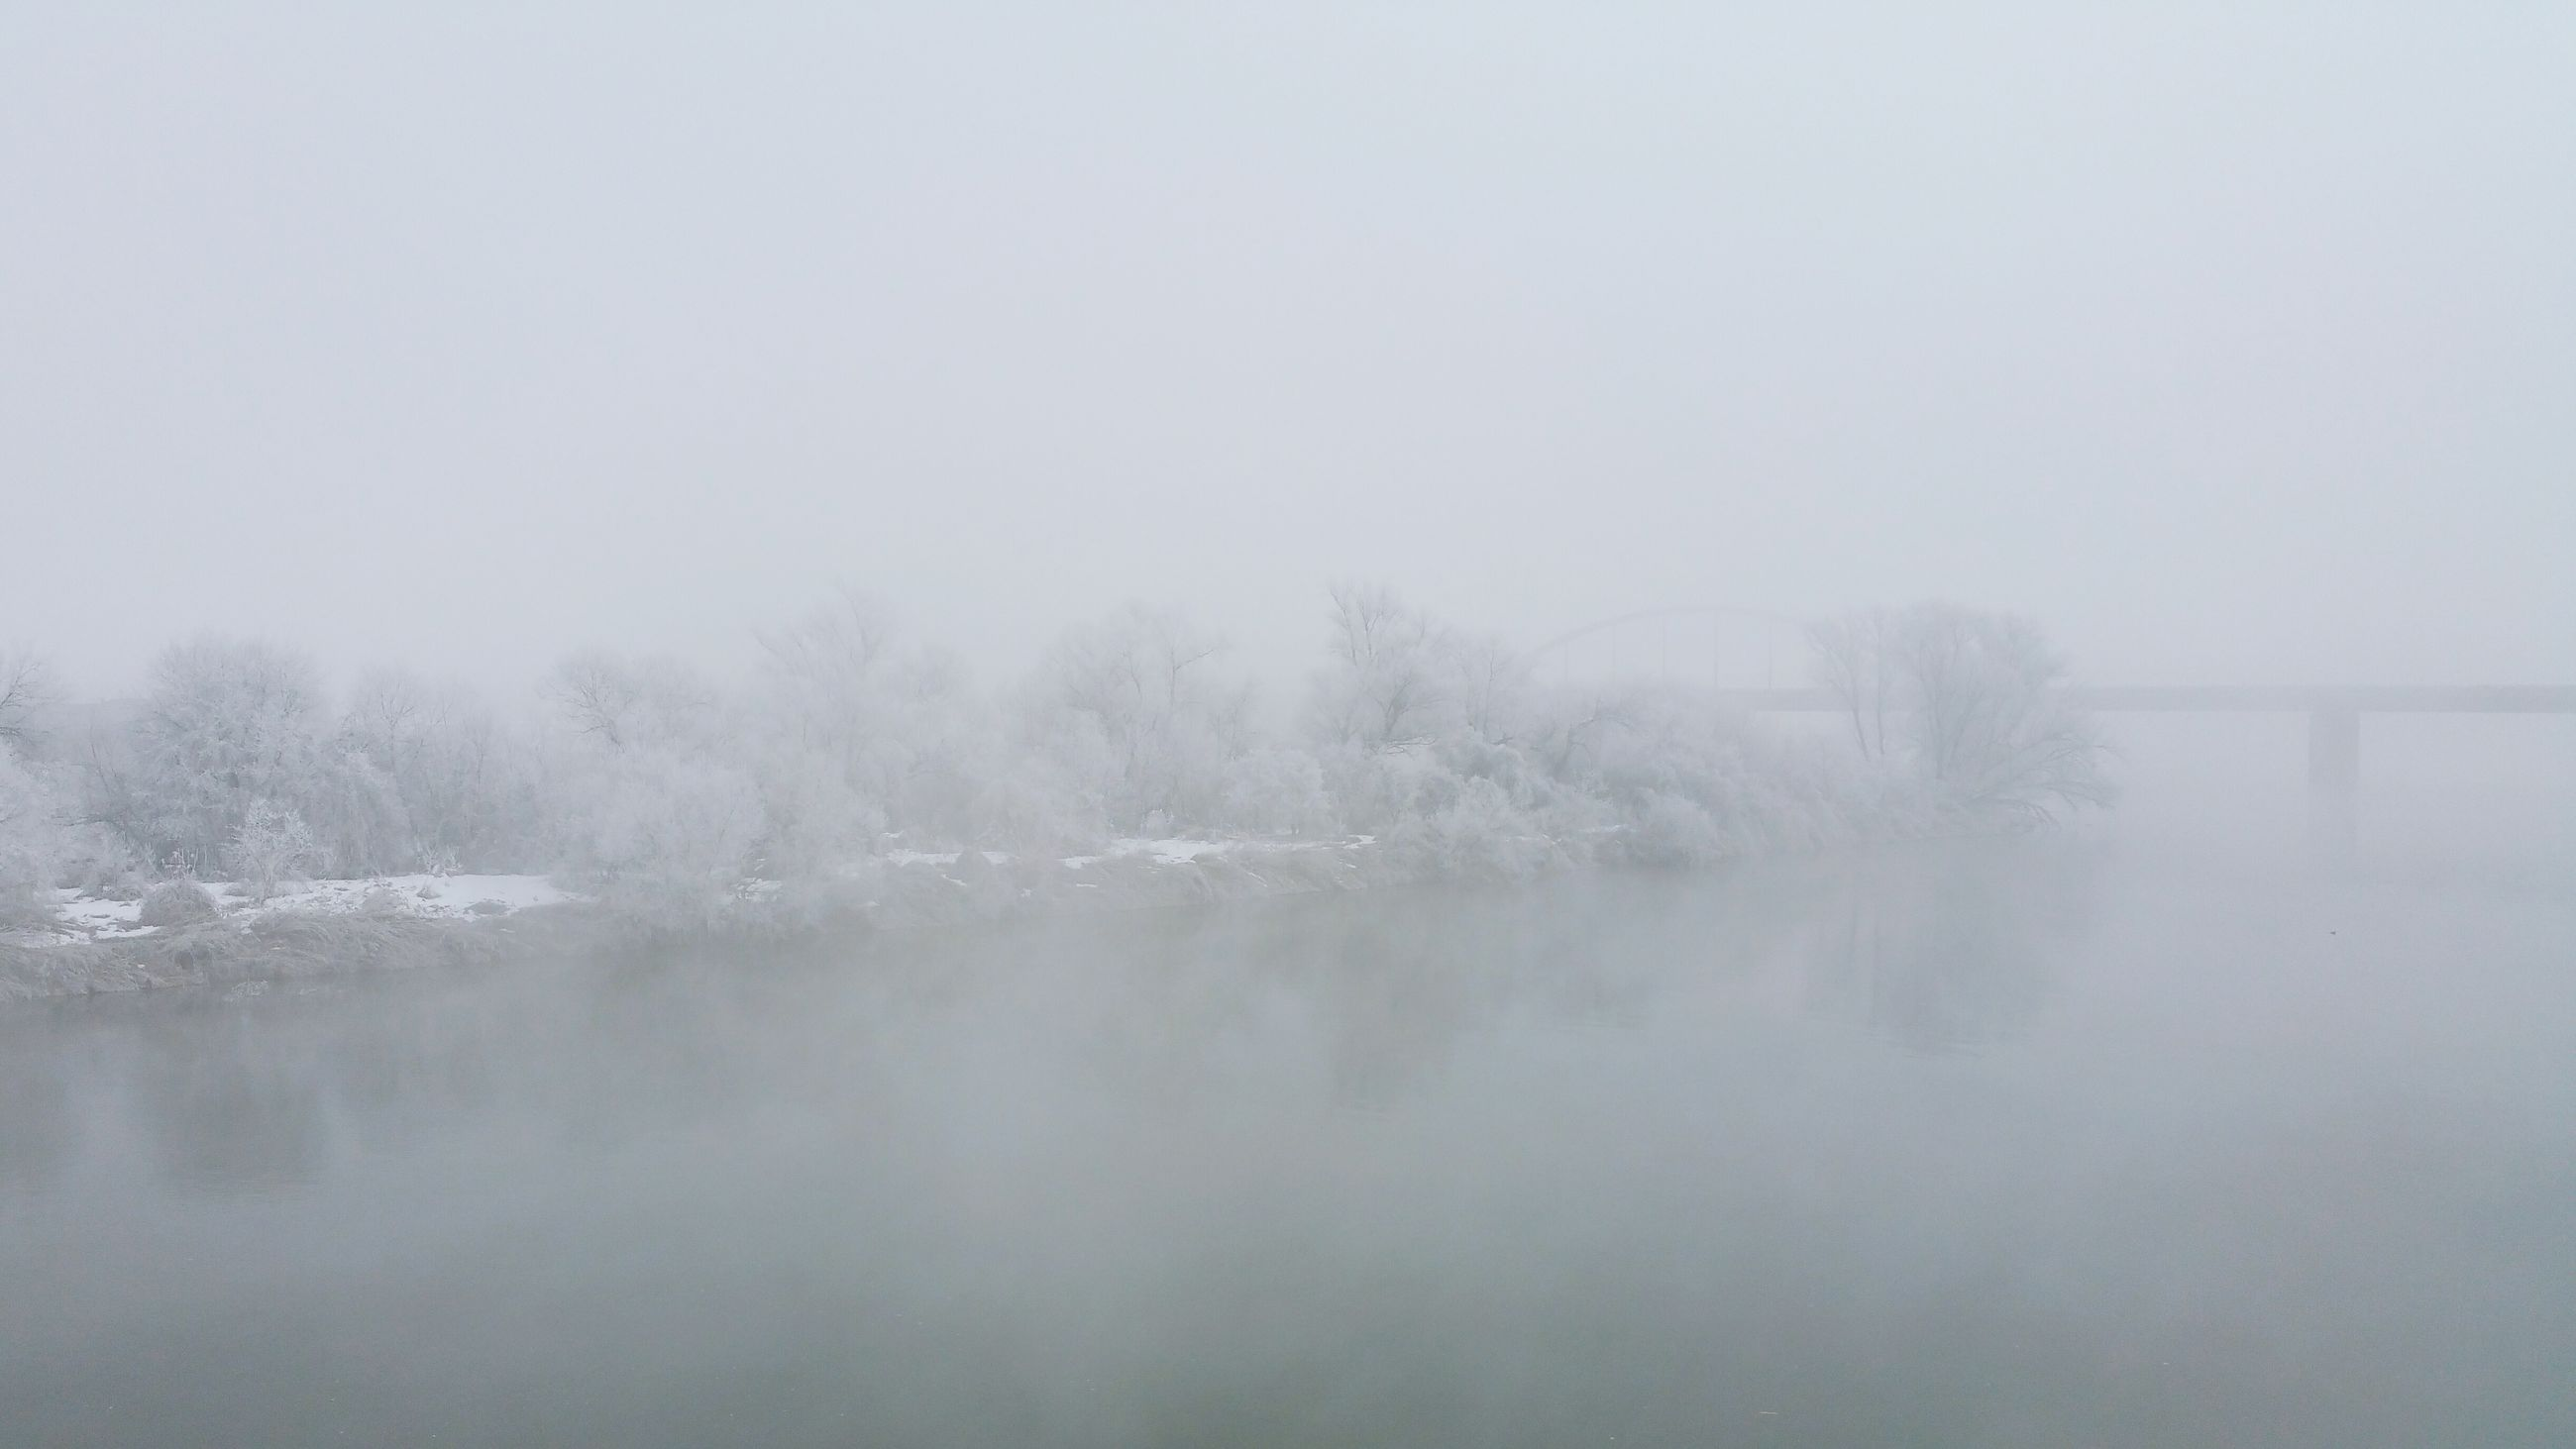 winter, cold temperature, weather, snow, fog, season, foggy, water, tranquil scene, tranquility, beauty in nature, scenics, frozen, nature, lake, tree, copy space, waterfront, covering